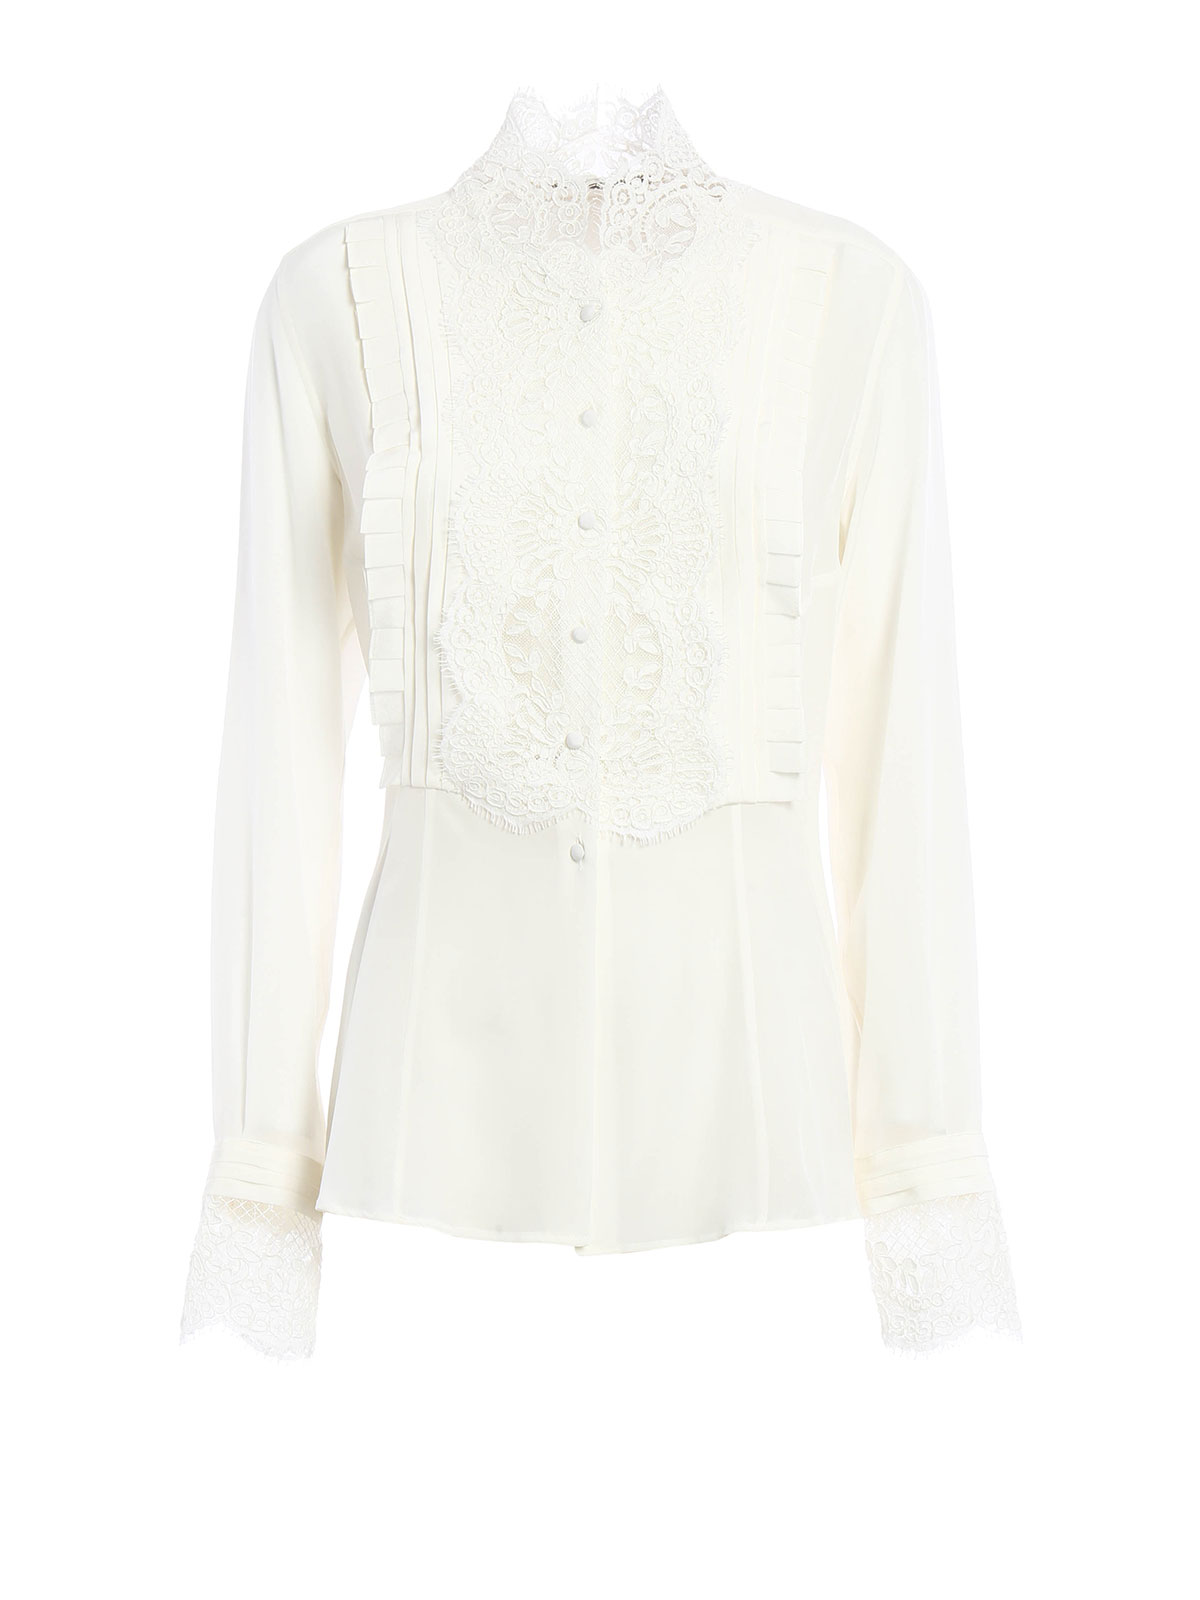 Black silk shirt Ermanno Scervino Clearance The Cheapest lxwbqxmsvK